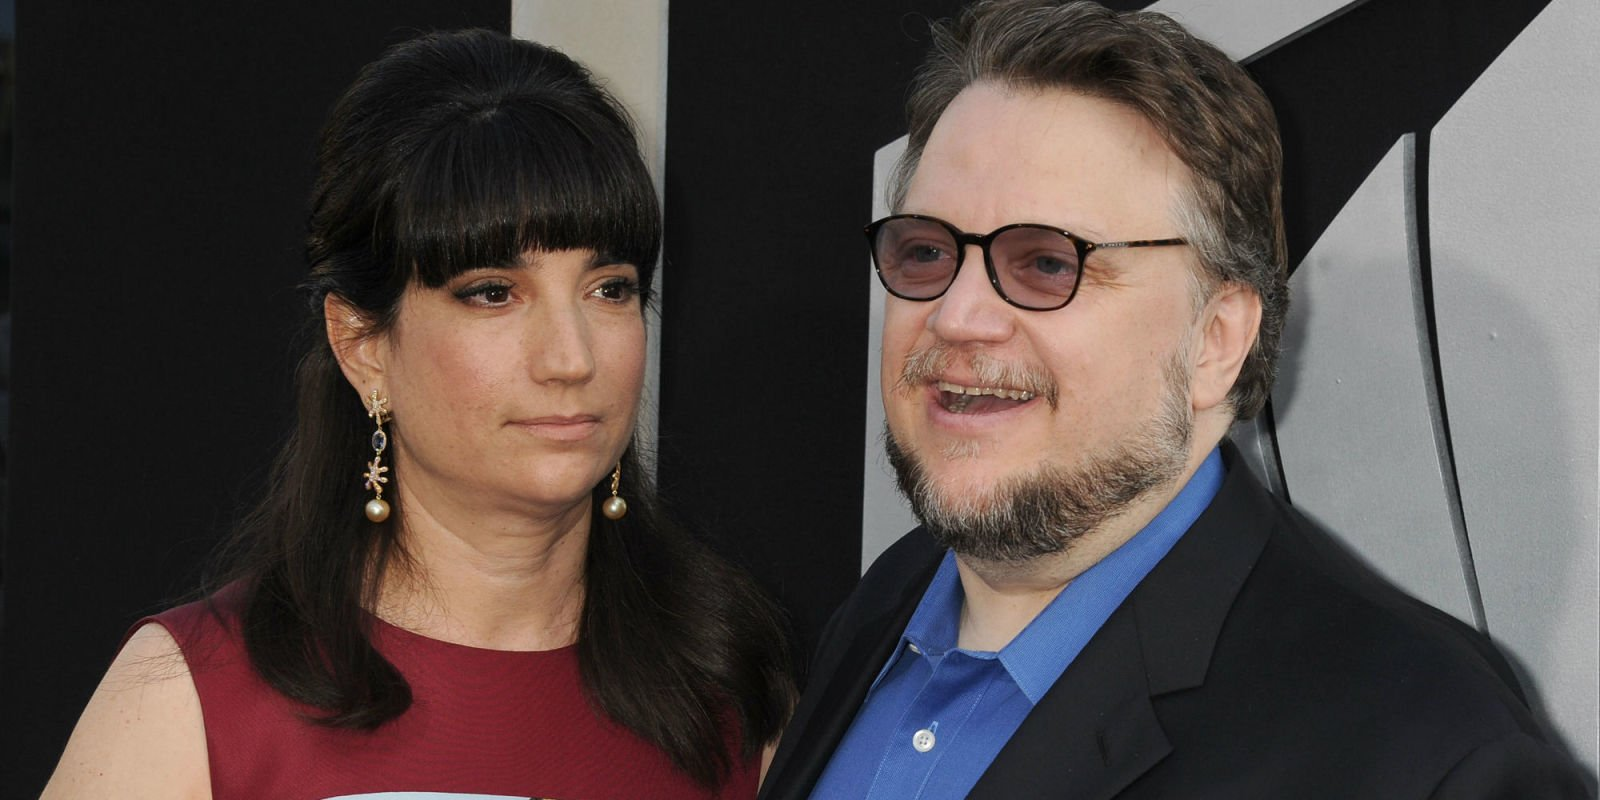 The Shape of Water director Guillermo del Toro confirms divorce from wife of 30 years